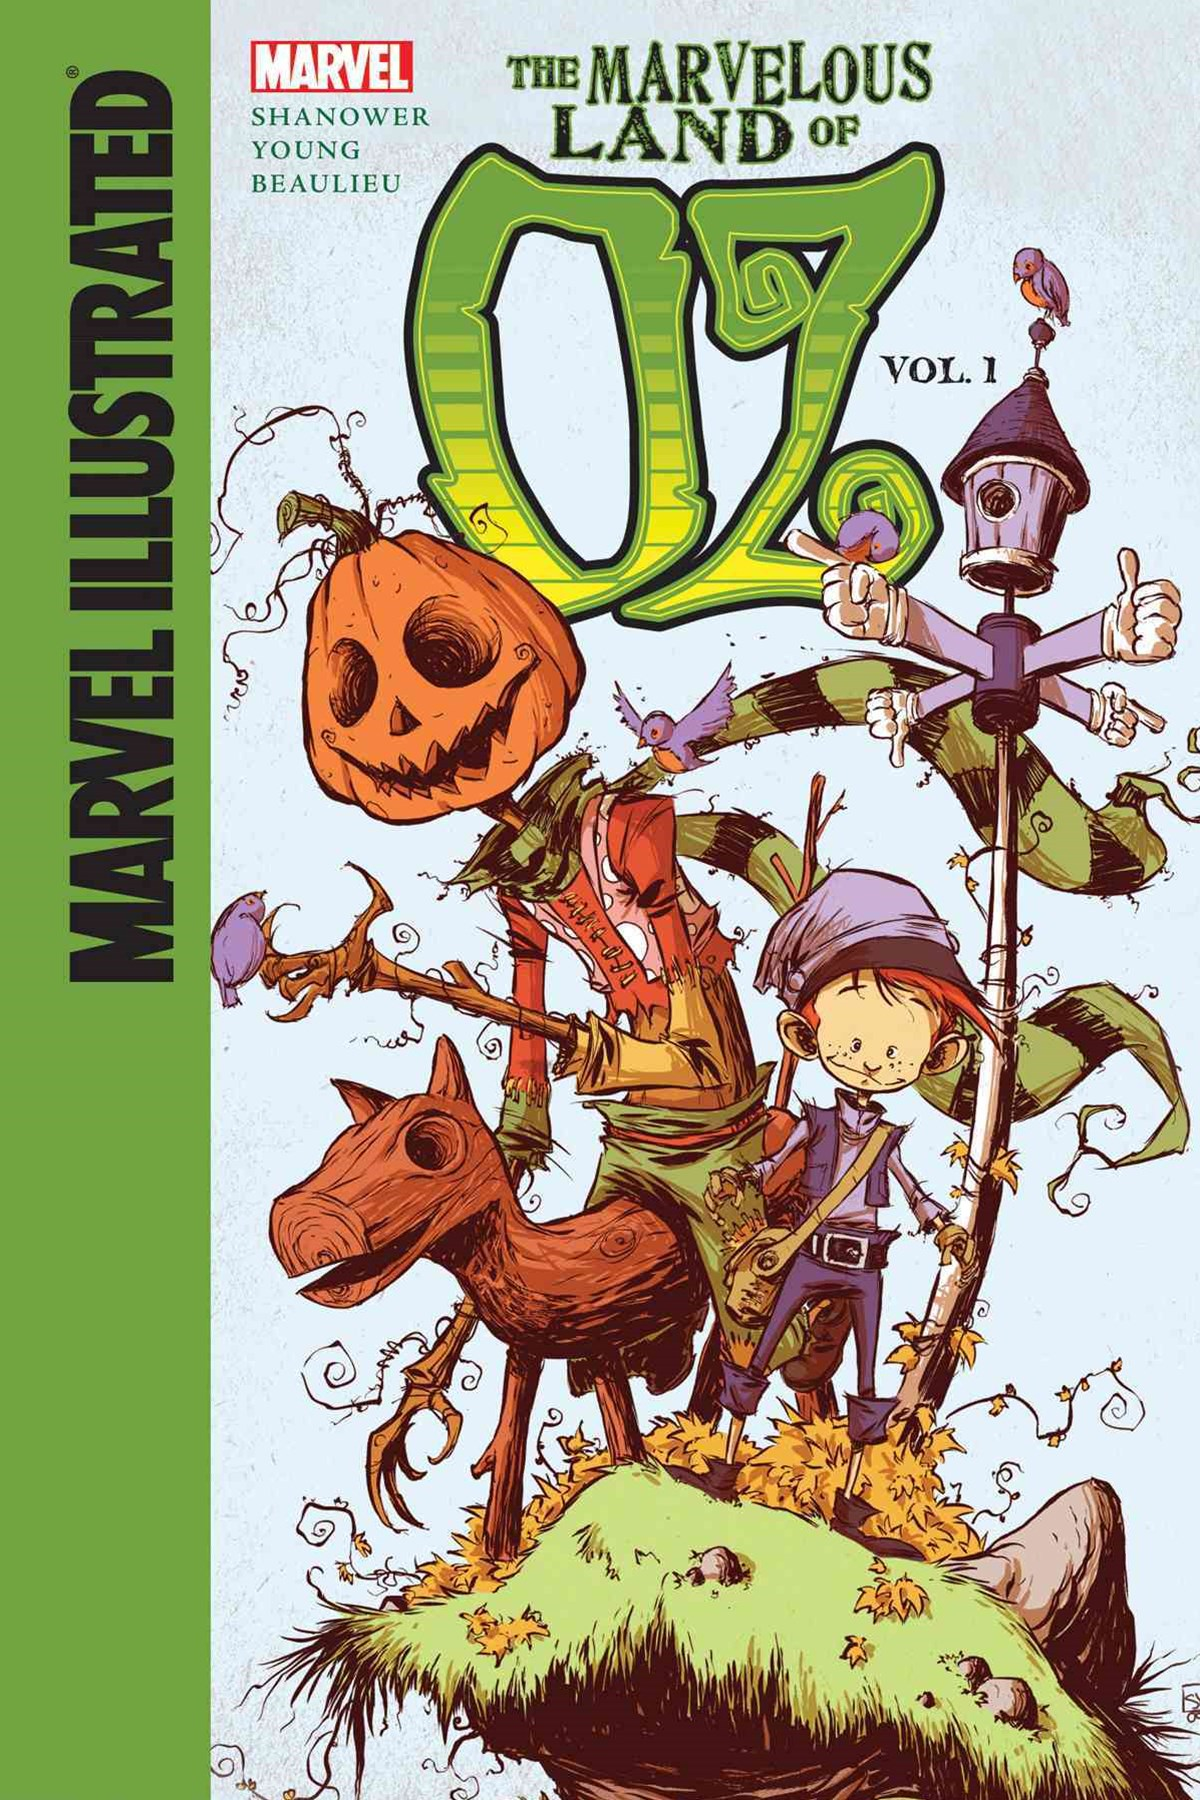 Marvelous Land of Oz: Vol. 1